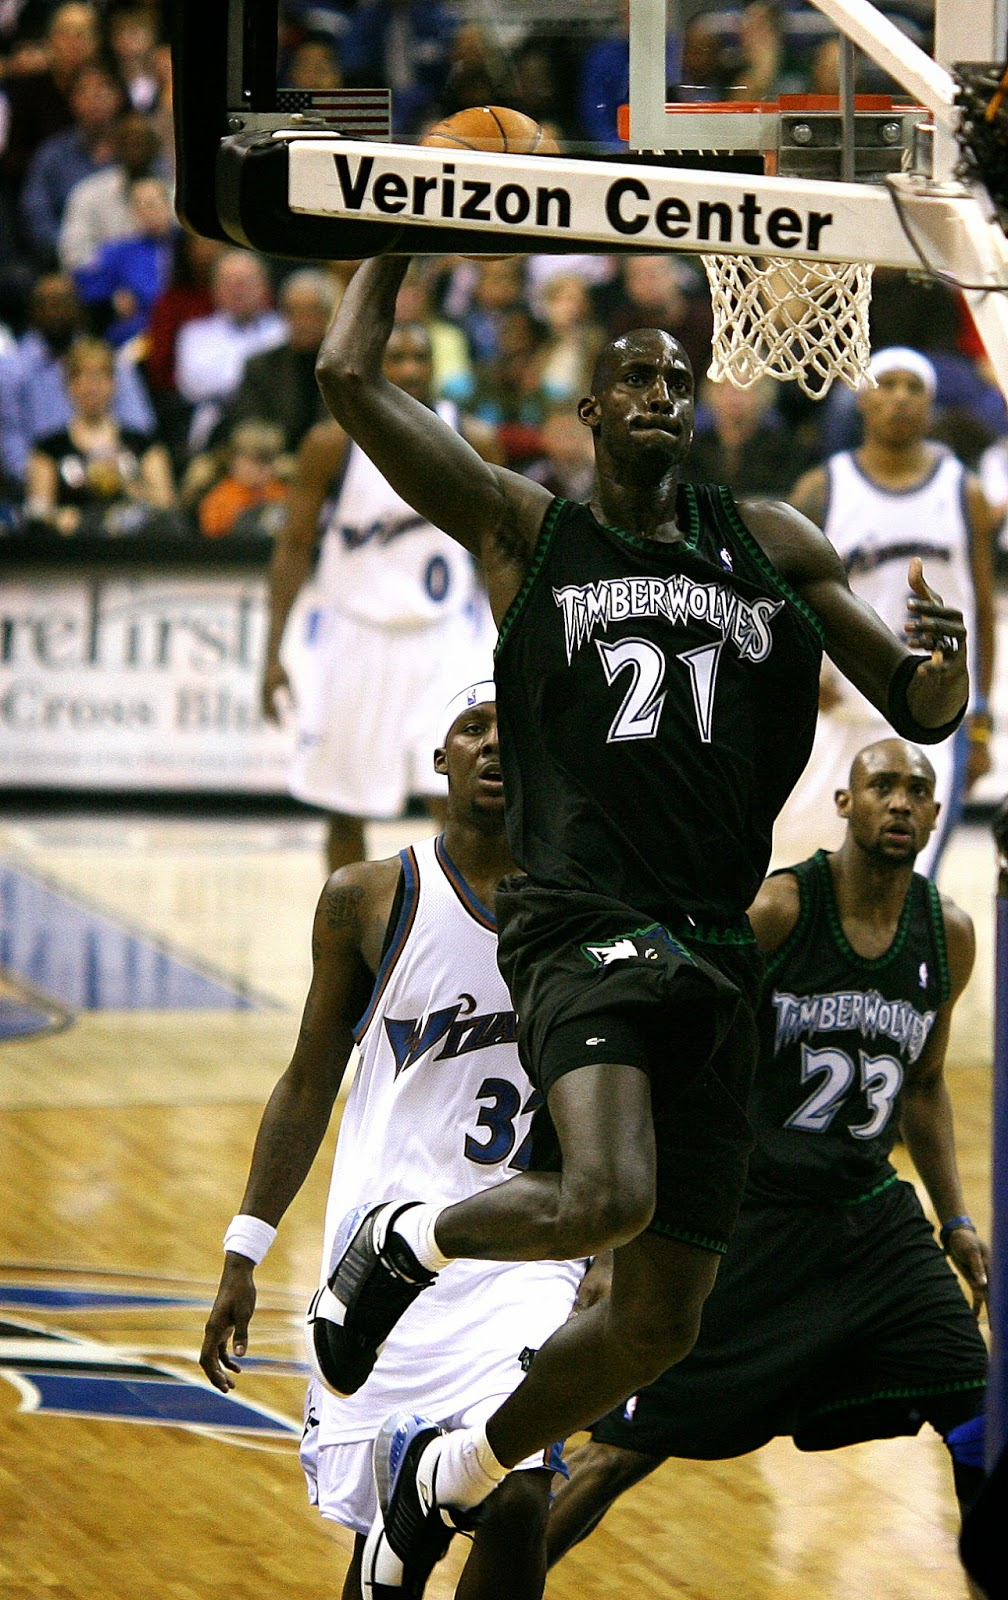 Kevin Garnett Dee Brown Juwan Howard Ronnie Fields…just who was